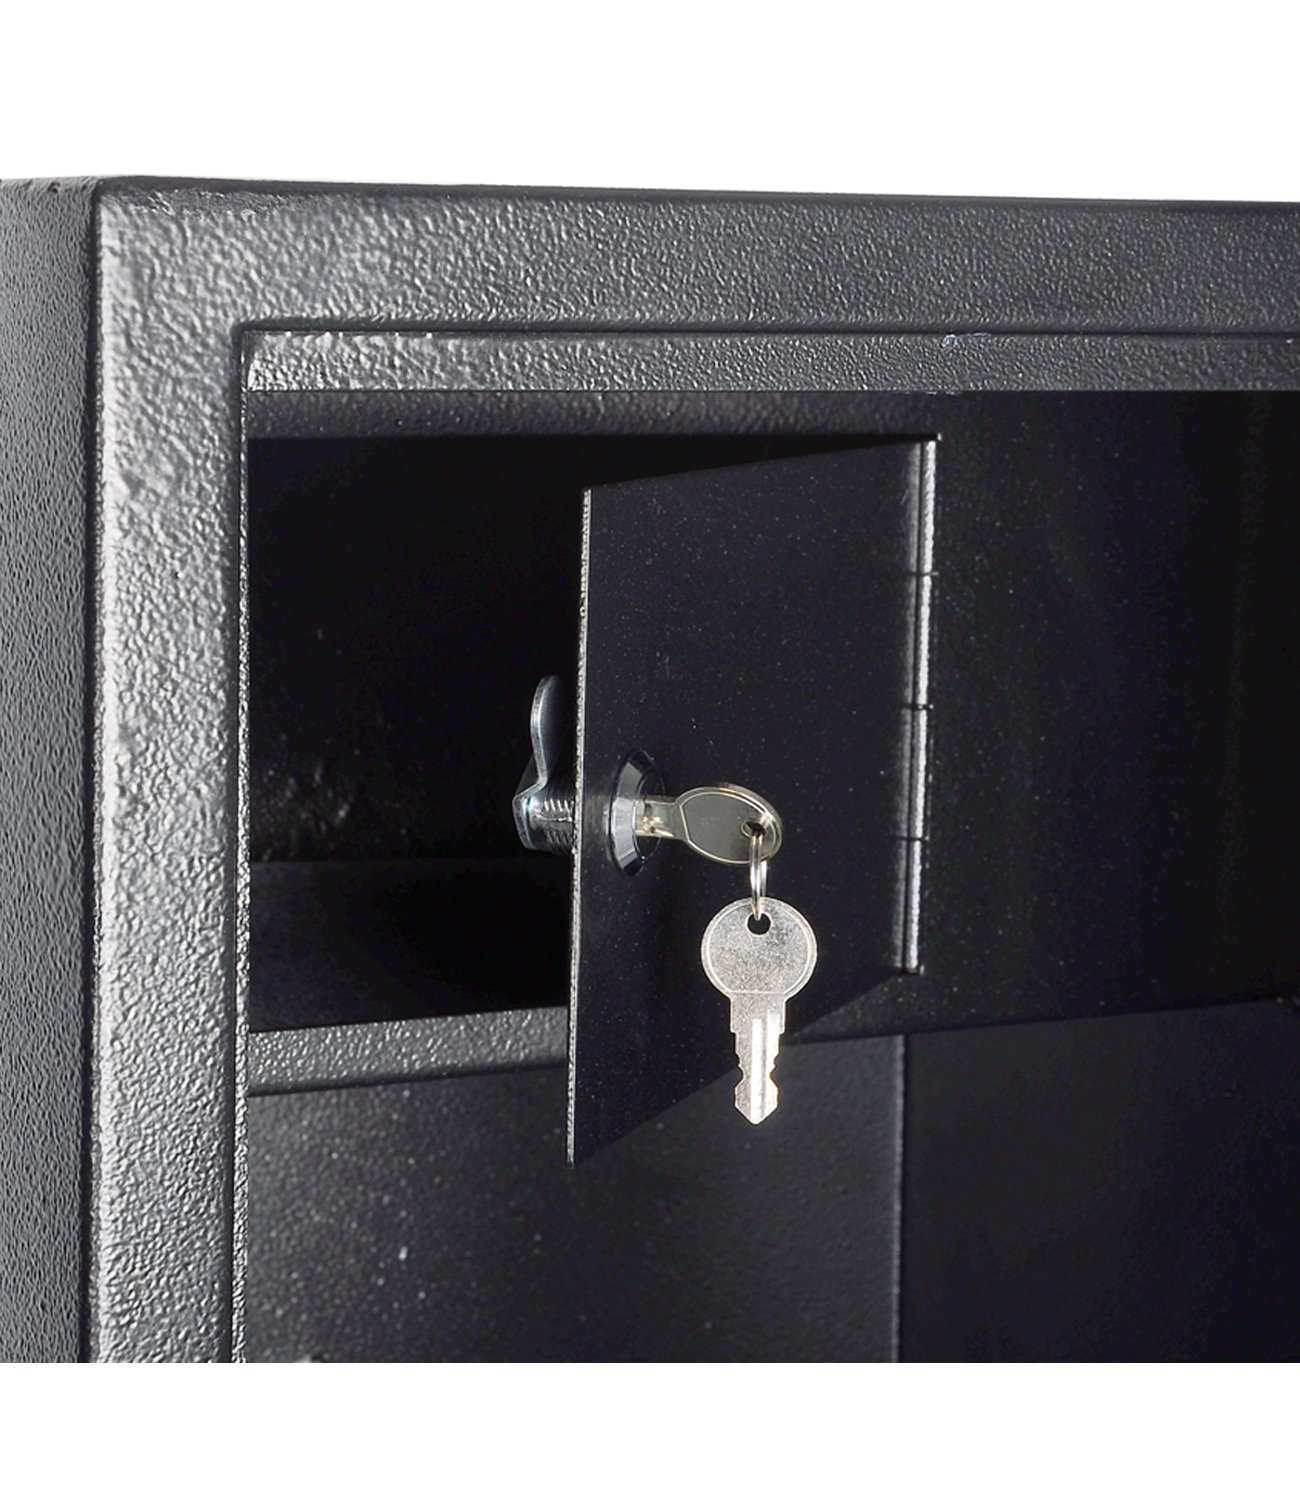 Rifle Safe Gun Safe Quick Access 5-Gun Shotgun Cabinet by Quicktec (Image #5)